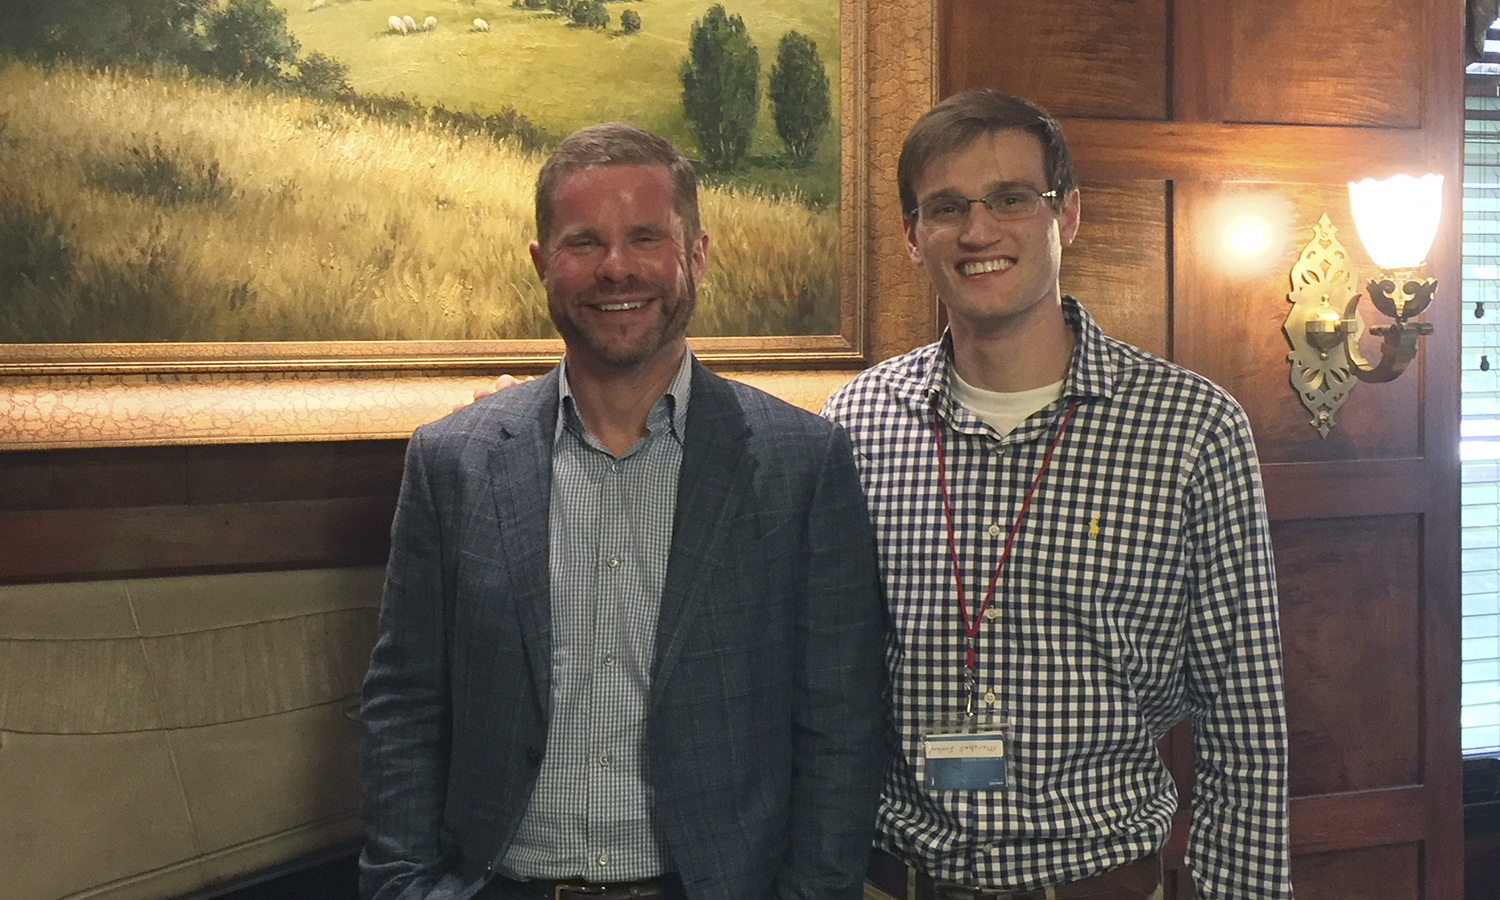 Marshell Ireland '20 poses with the founding partner of Thomas & Solomon in Rochester, N.Y. This summer, Ireland is interning with the firm, specializing in Employment Law.